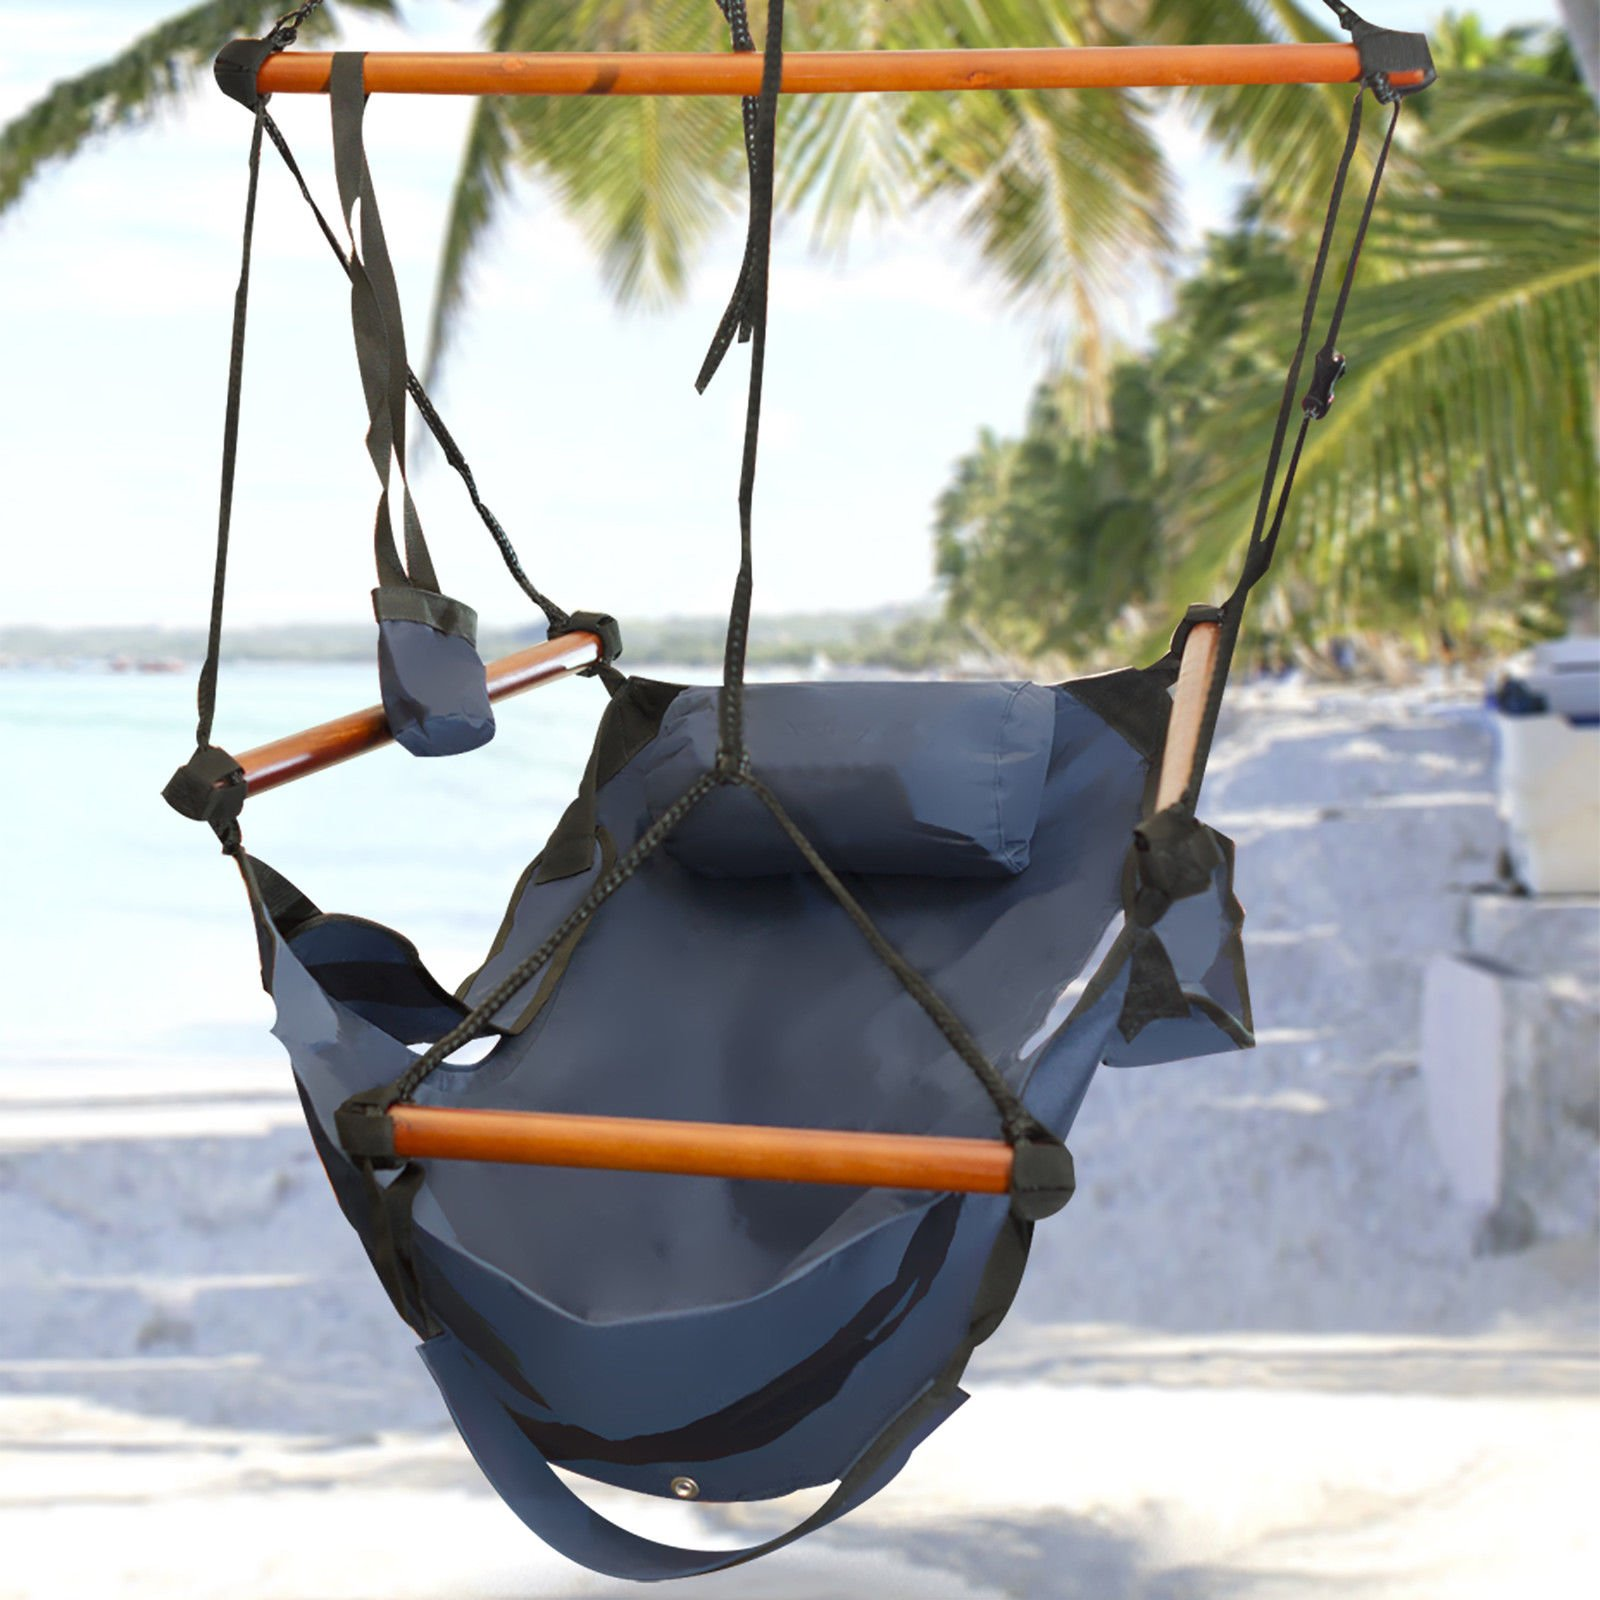 Best Choice Products Hammock Hanging Chair Air Deluxe Outdoor Chair Solid Wood 250lb Blue Buy Online In Belize At Desertcart Productid 2289263